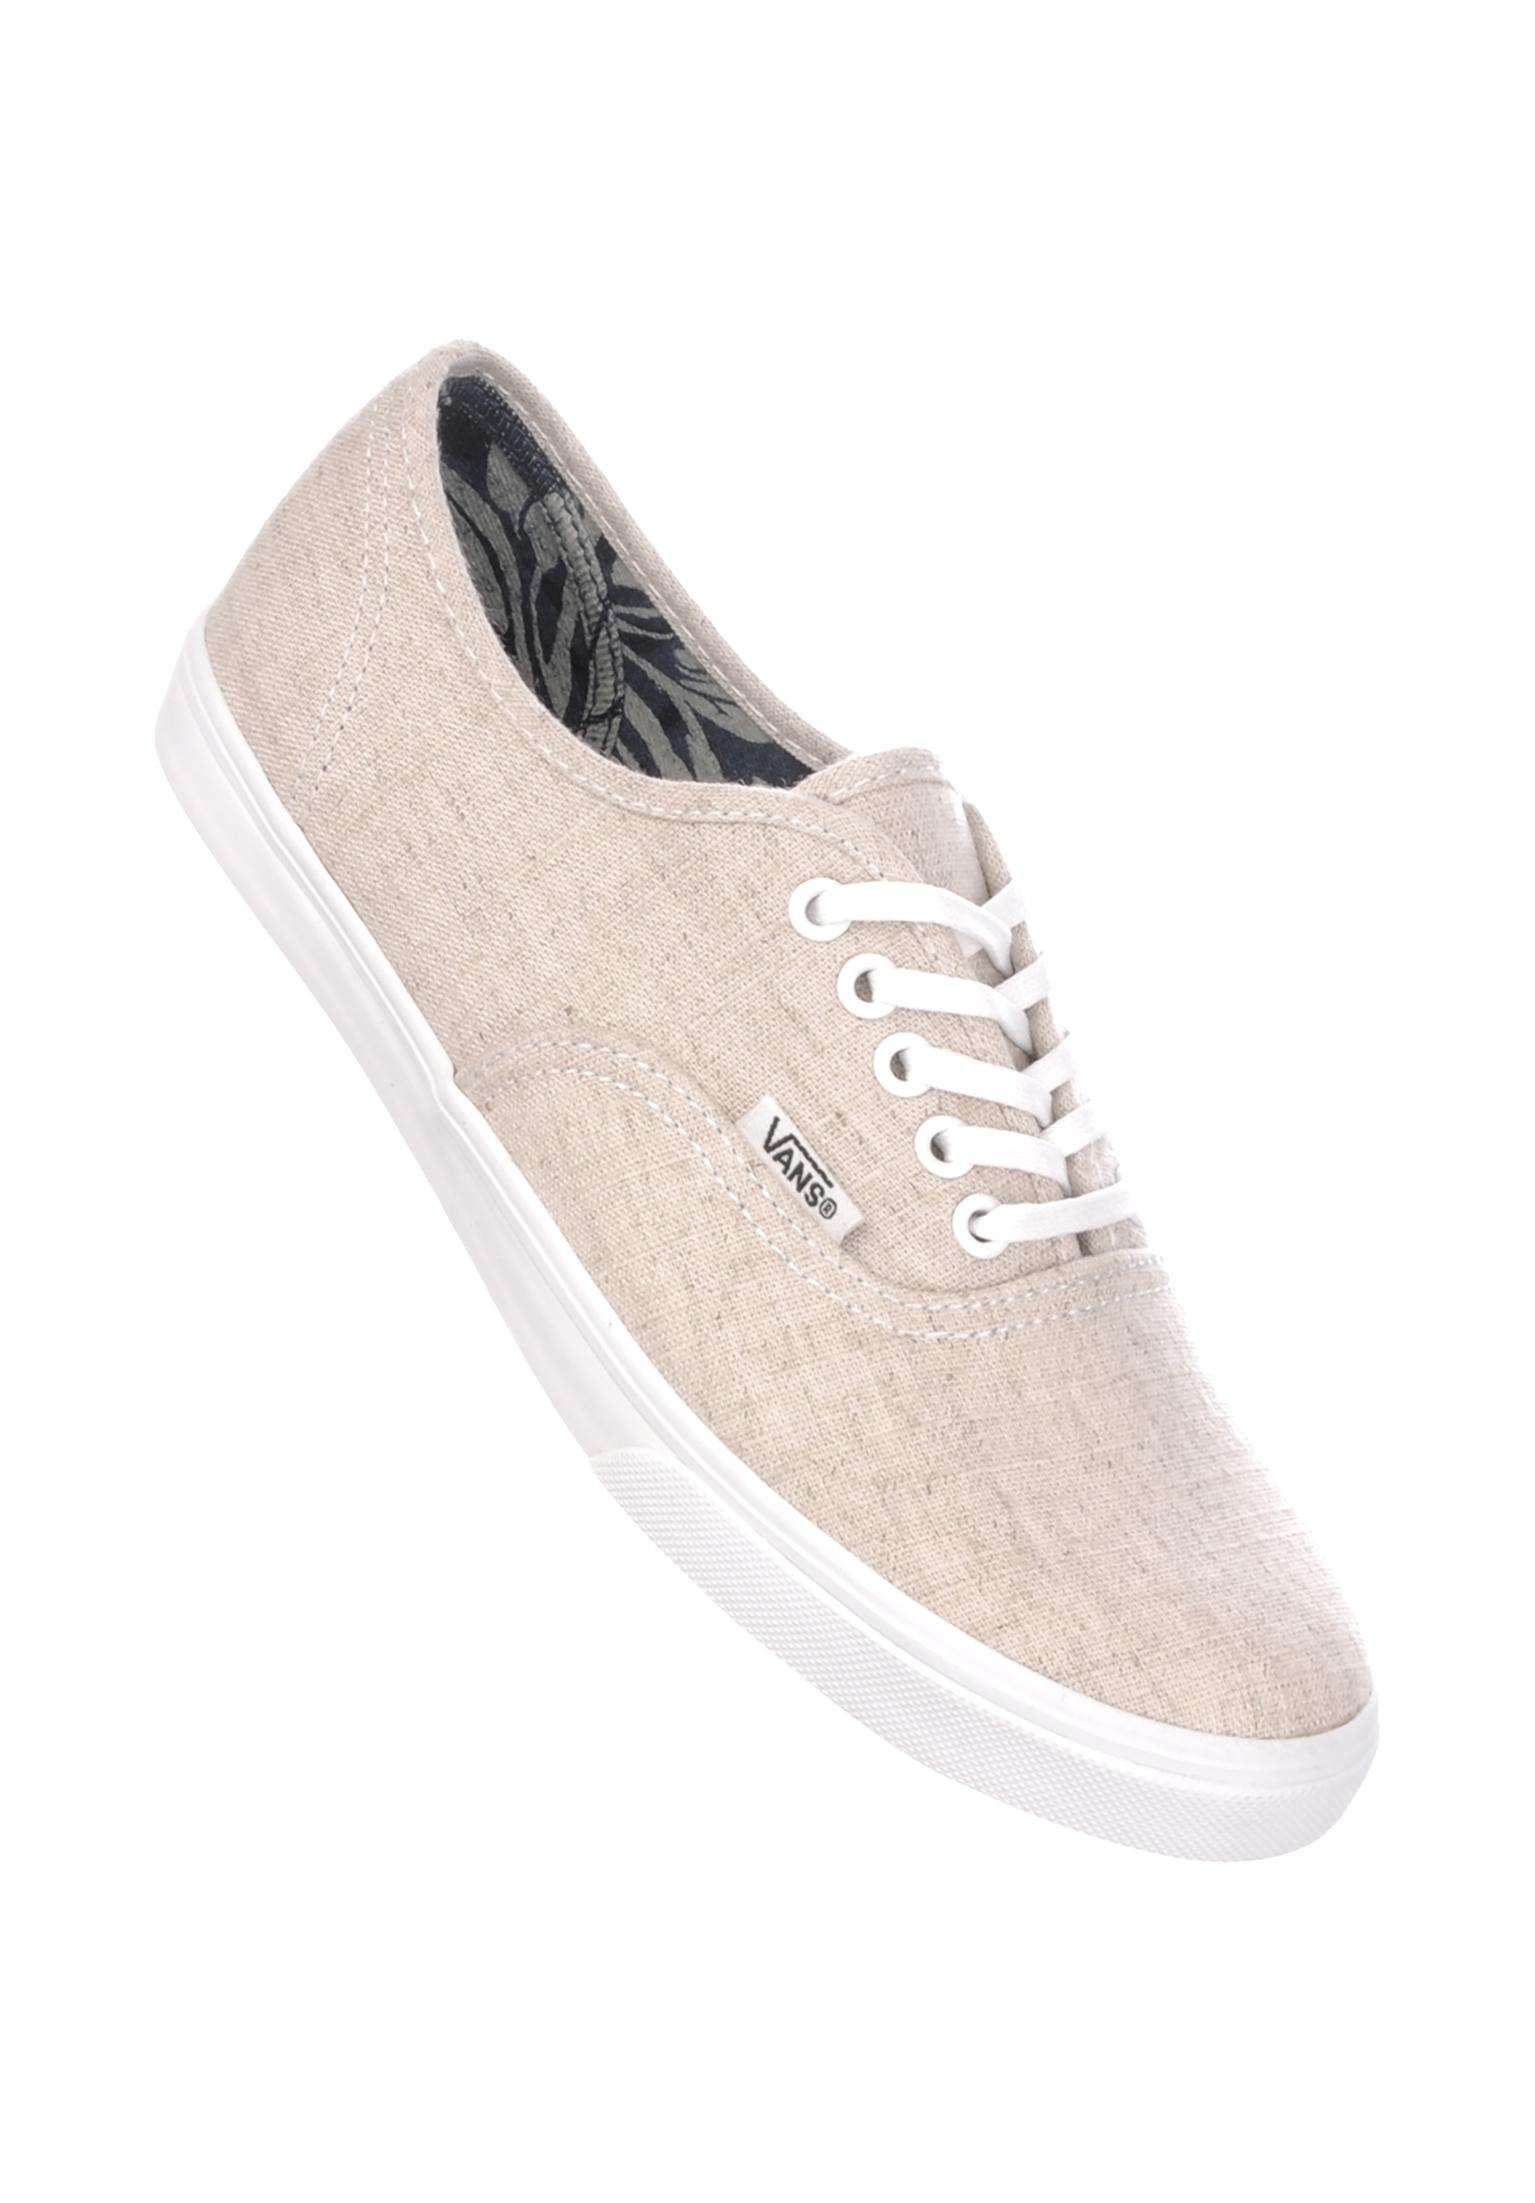 cc9160ab42c Authentic Lo Pro Classic Vans All Shoes in natural-truewhite for Women